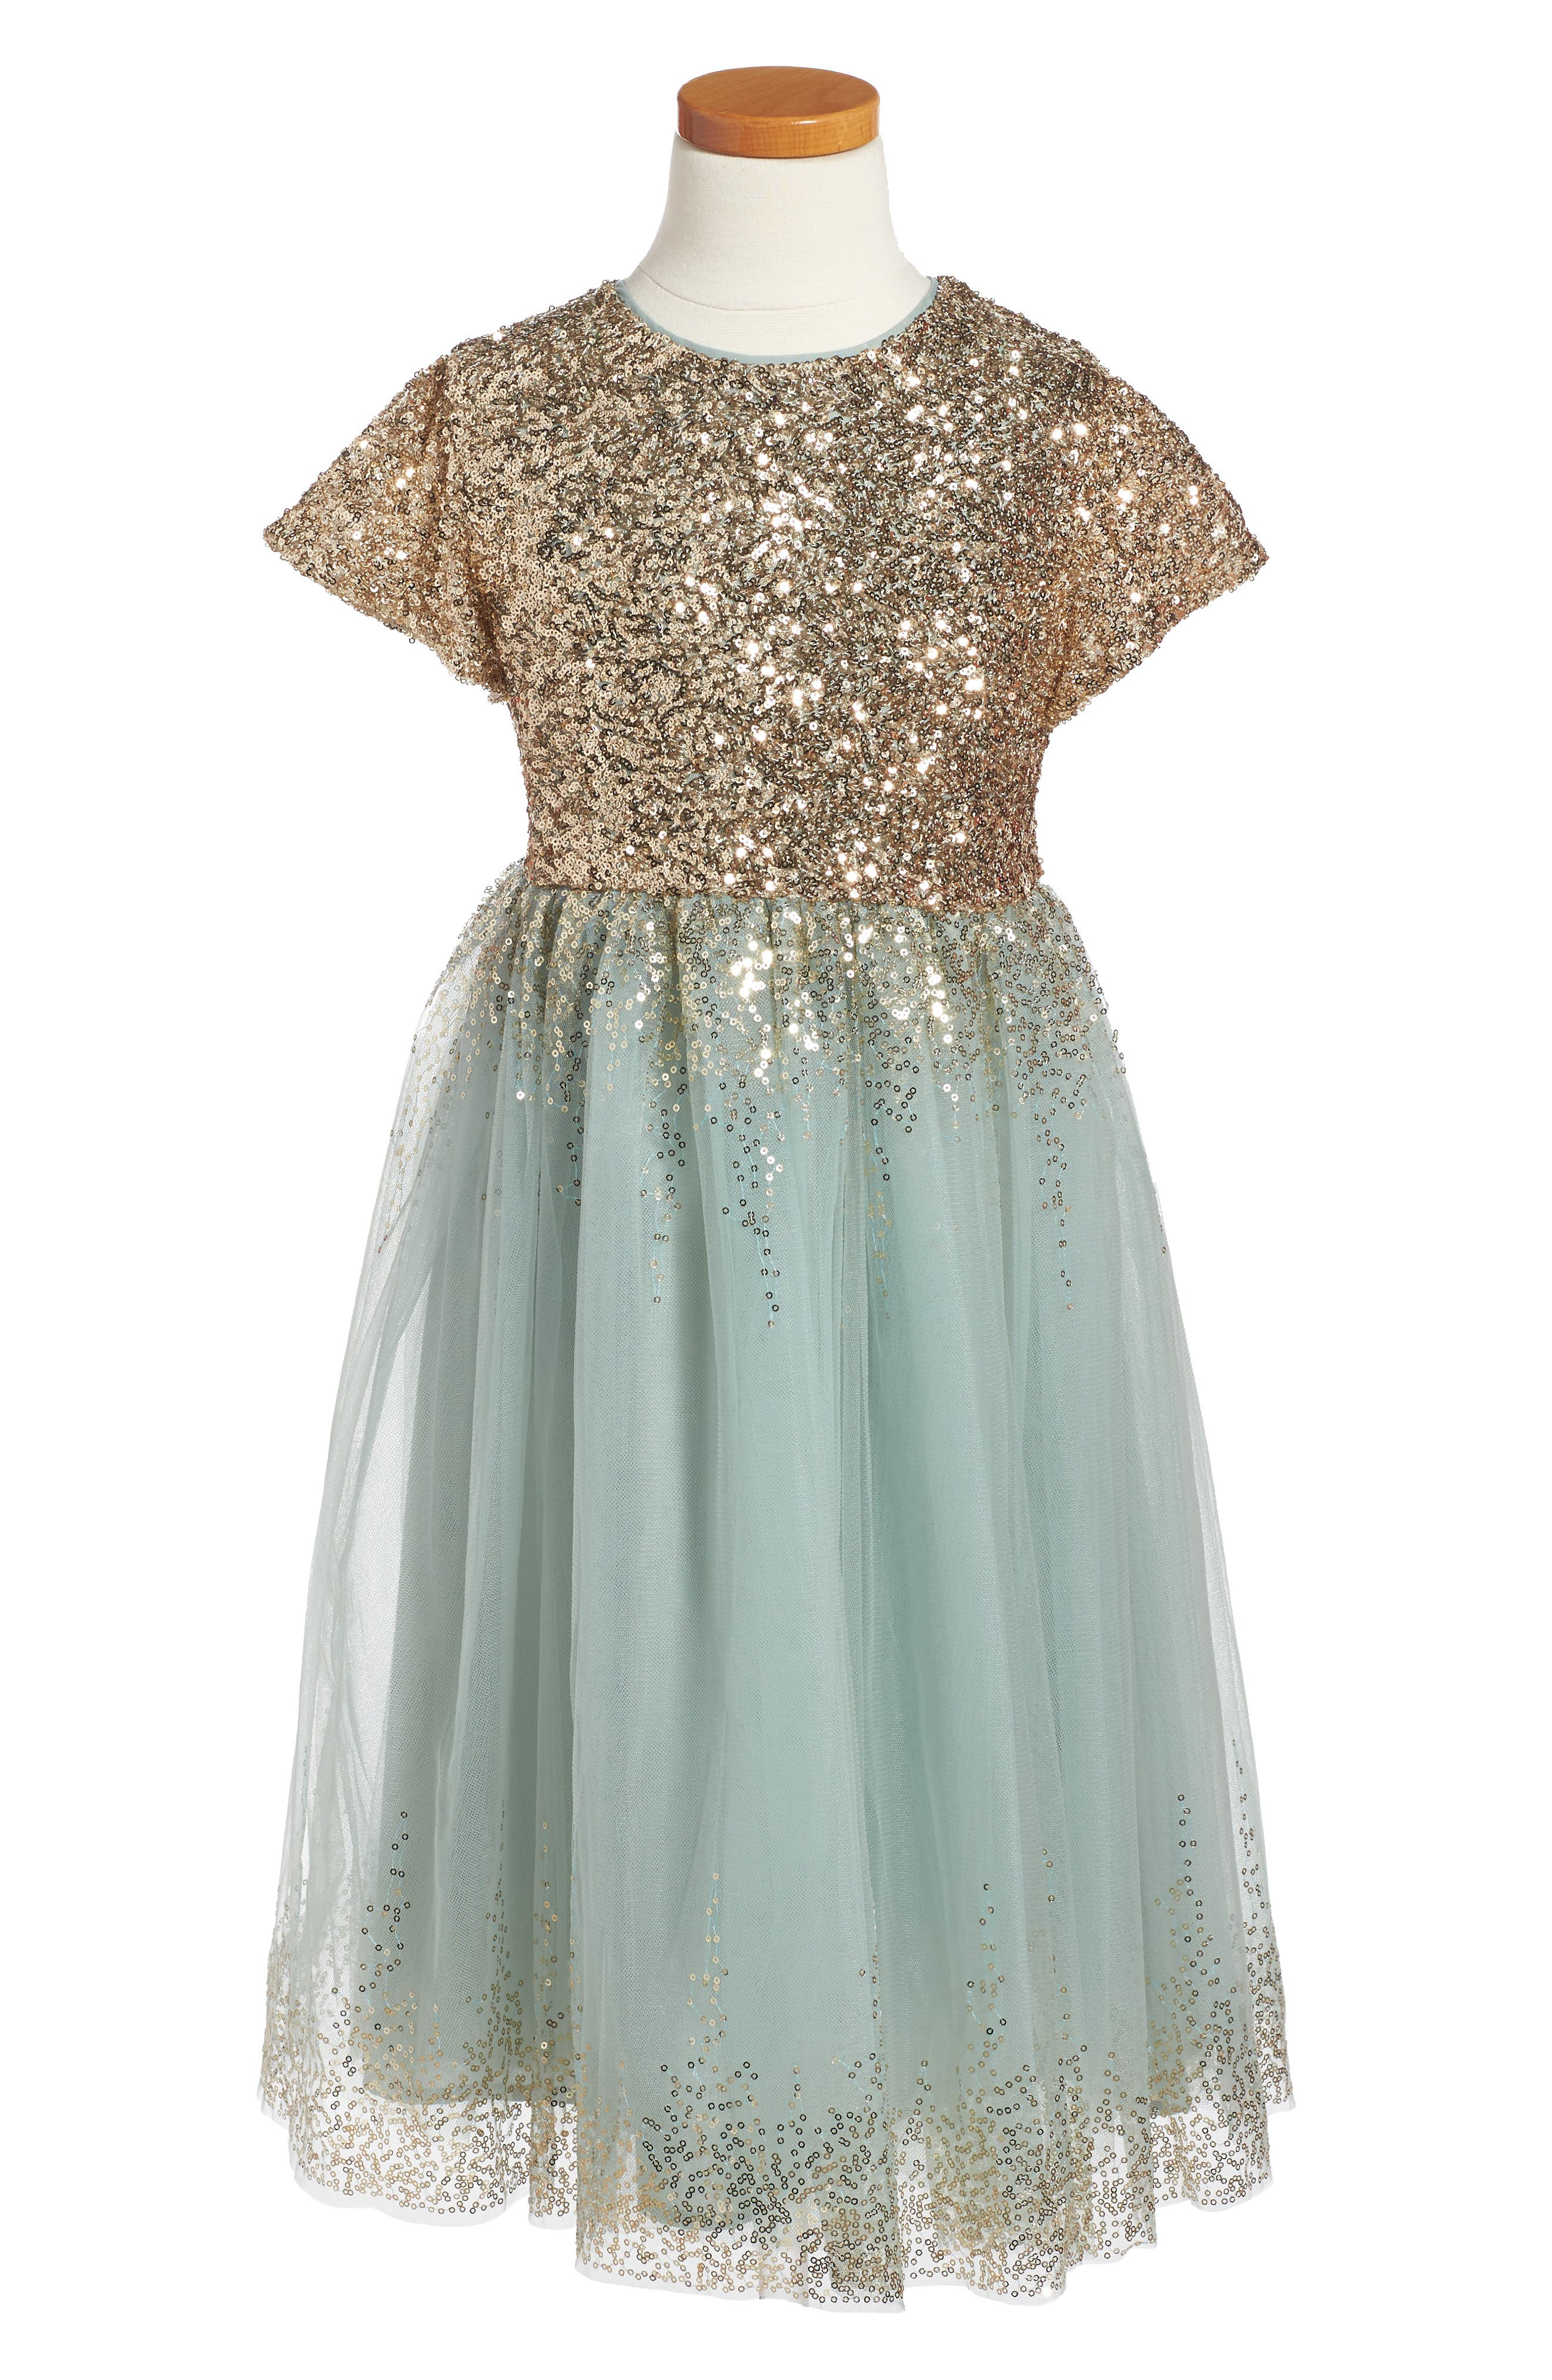 Wild and Gorgeous Sequin Moon Party Dress,                             Main thumbnail 1, color,                             440